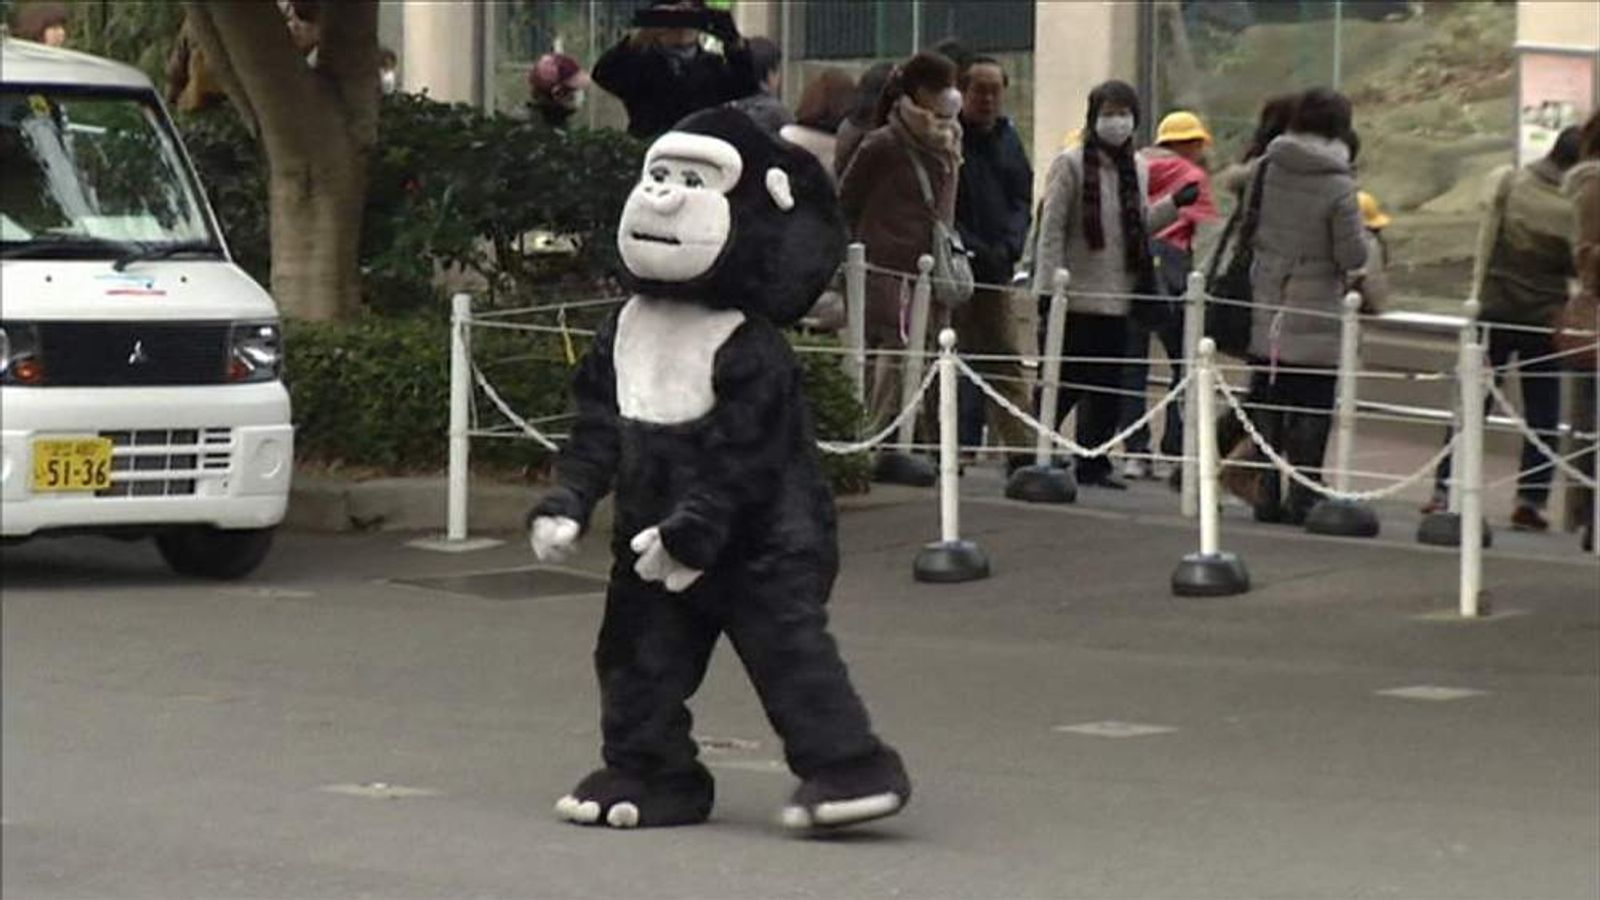 The gorilla in costume